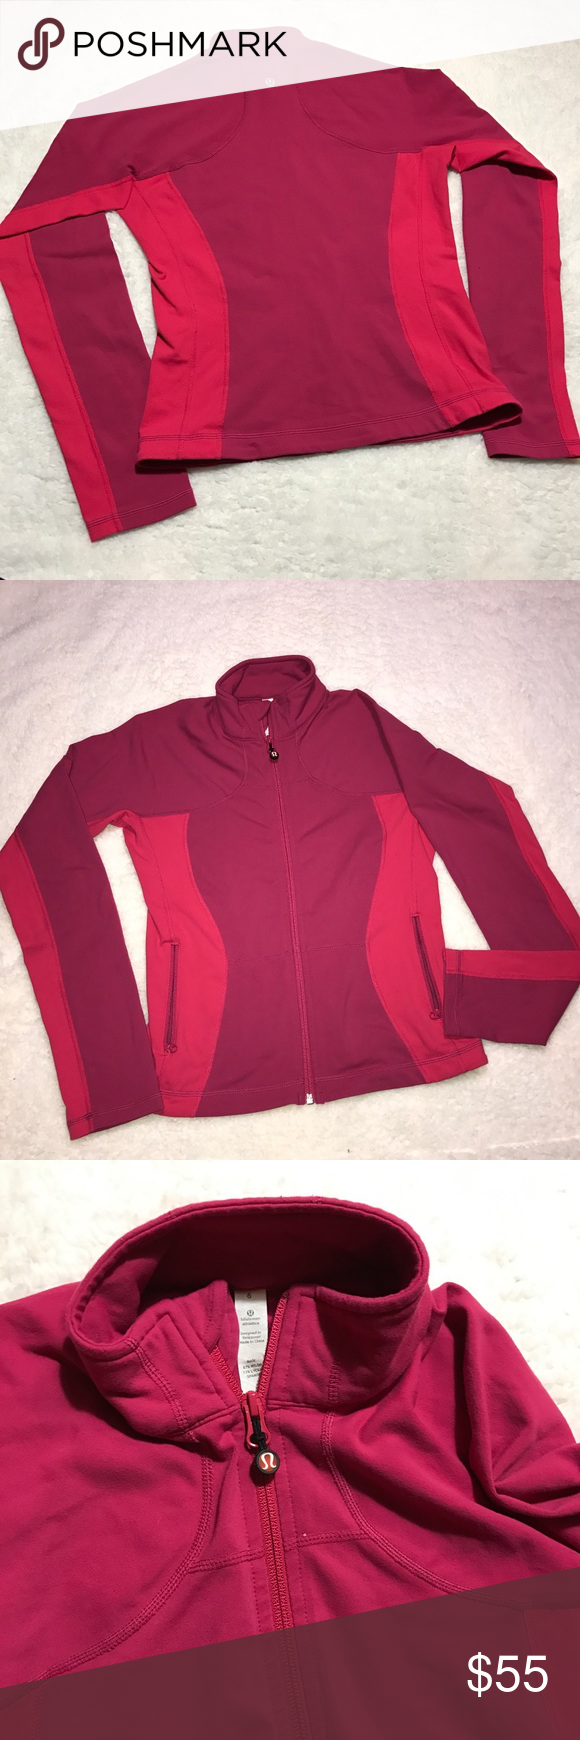 lululemon shape jacket coats stains and shape lululemon shape jacket excellent condition no rips stains pilling or flaws 🚫trades 🚫